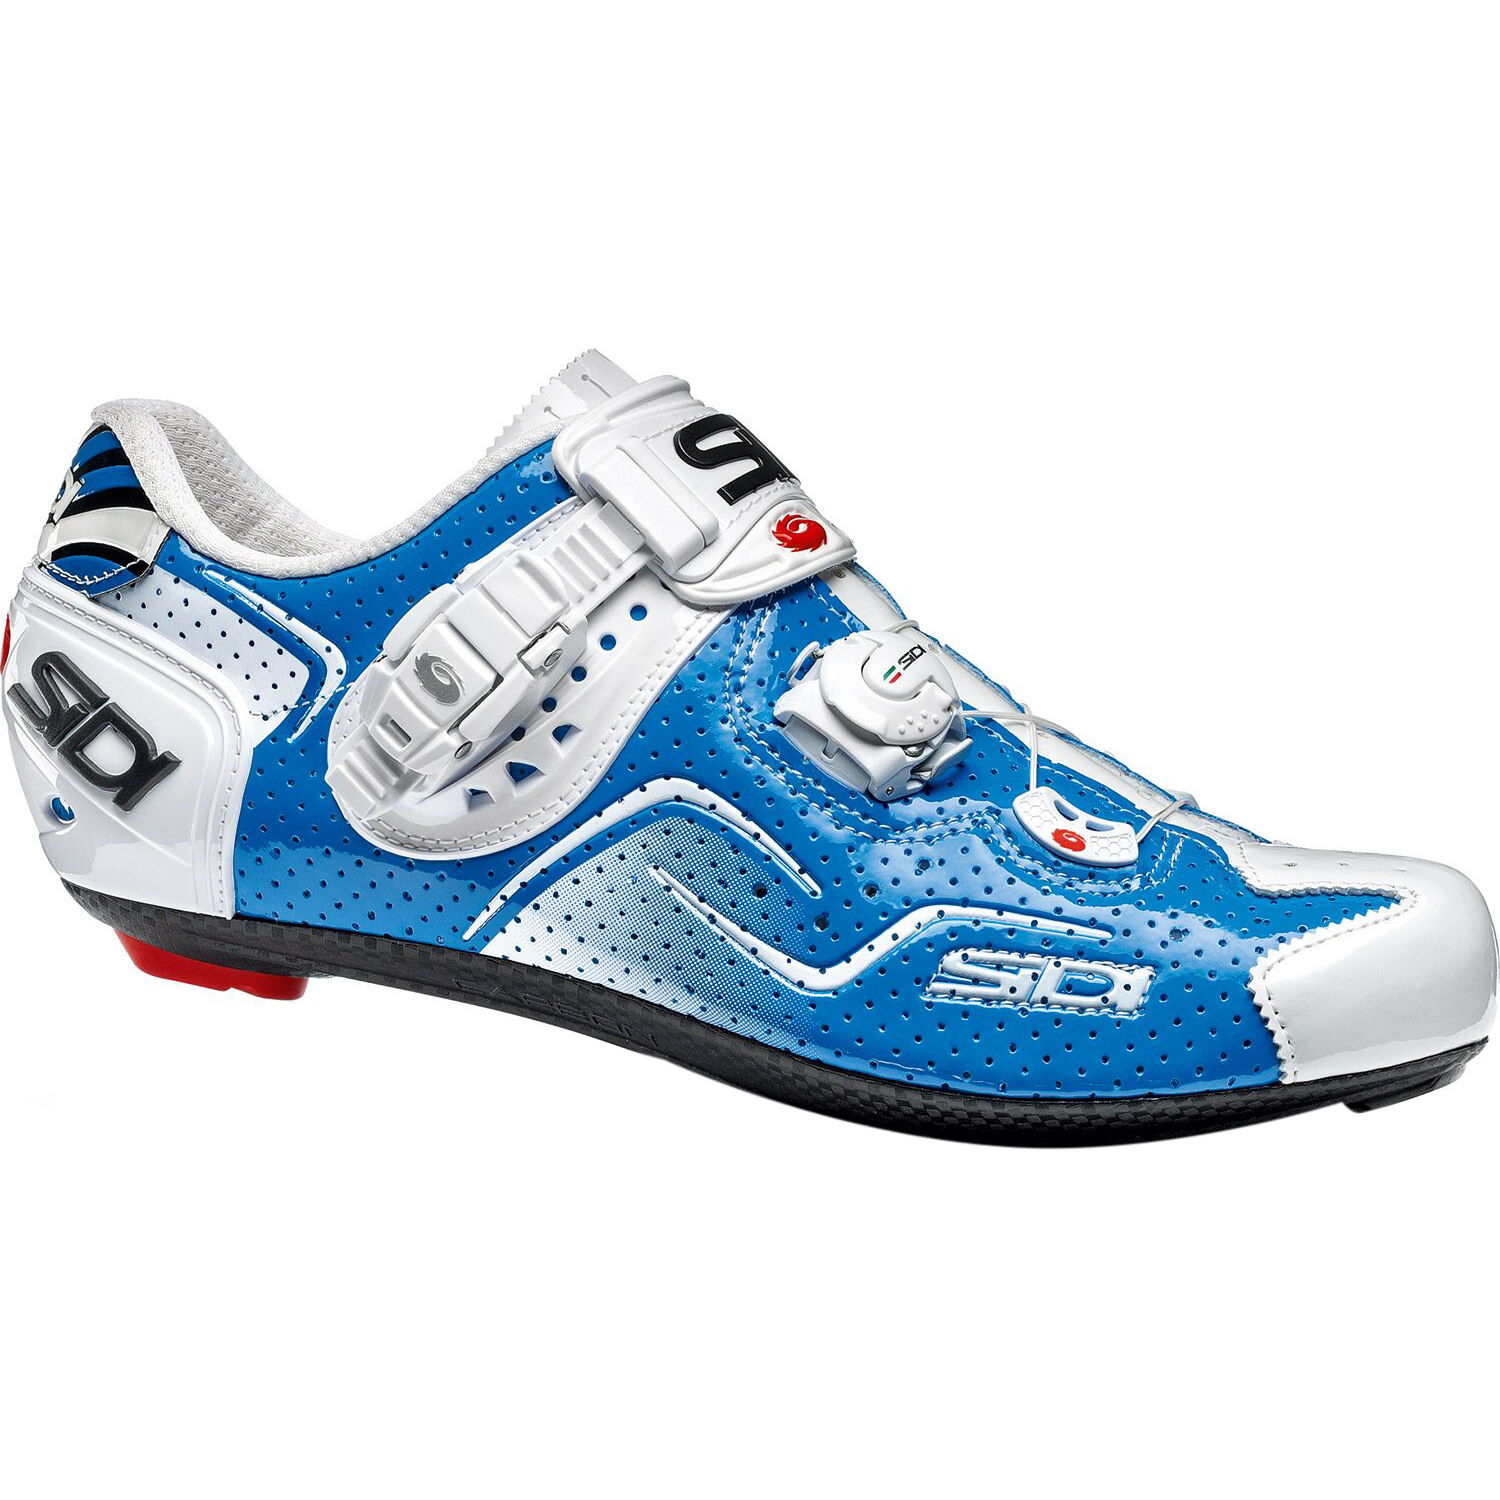 Look Cycling Shoes Sale